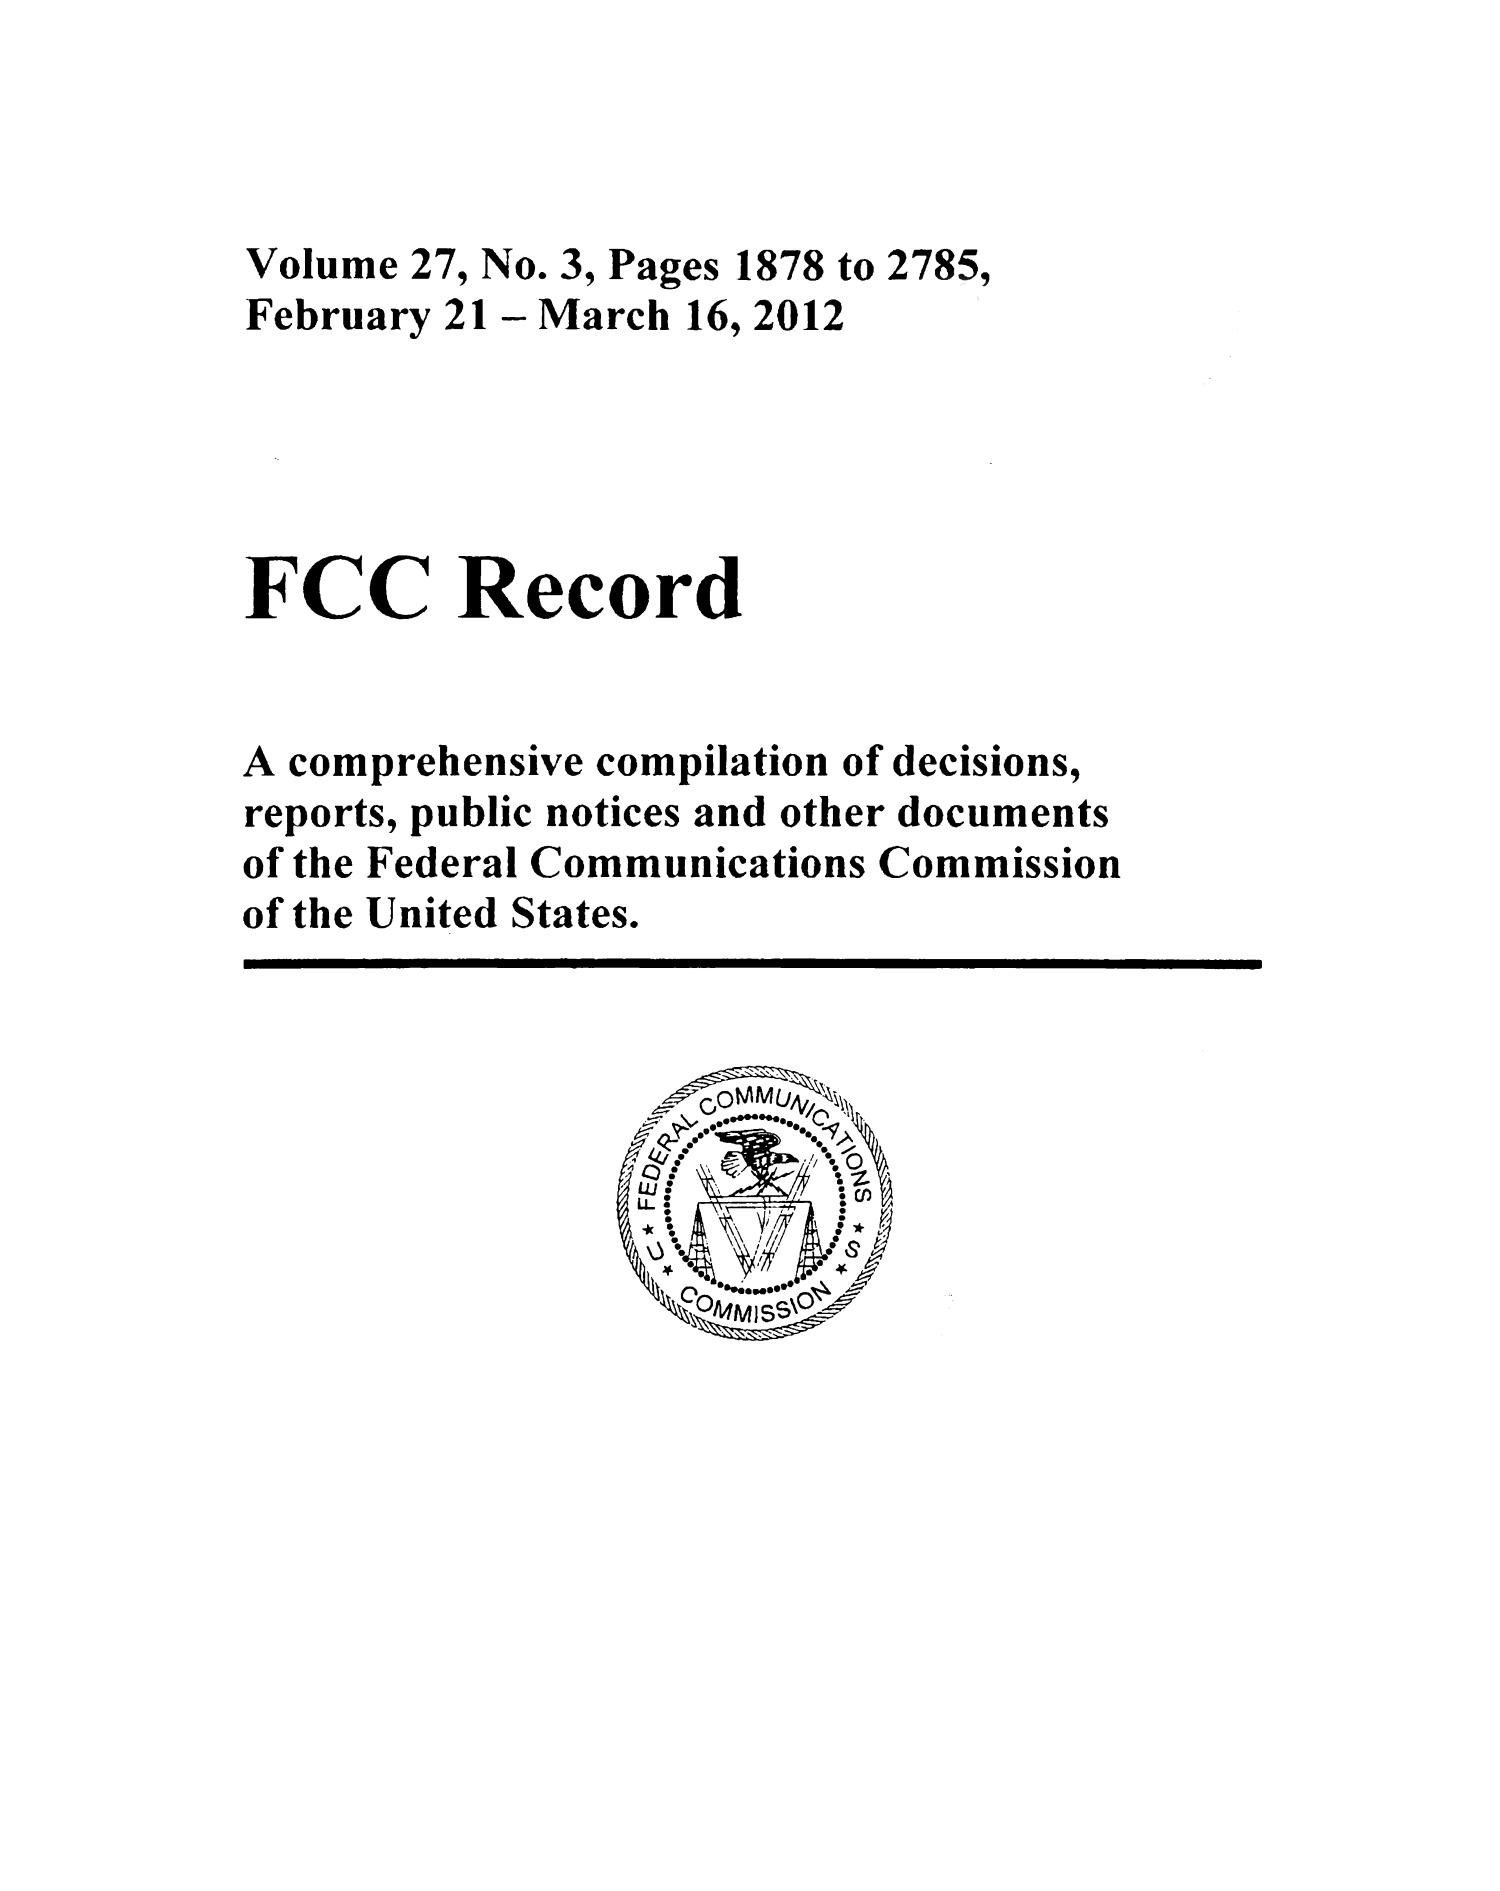 FCC Record, Volume 27, No. 3, Pages 1878 to 2785, February 21 - March 16, 2012                                                                                                      Front Cover